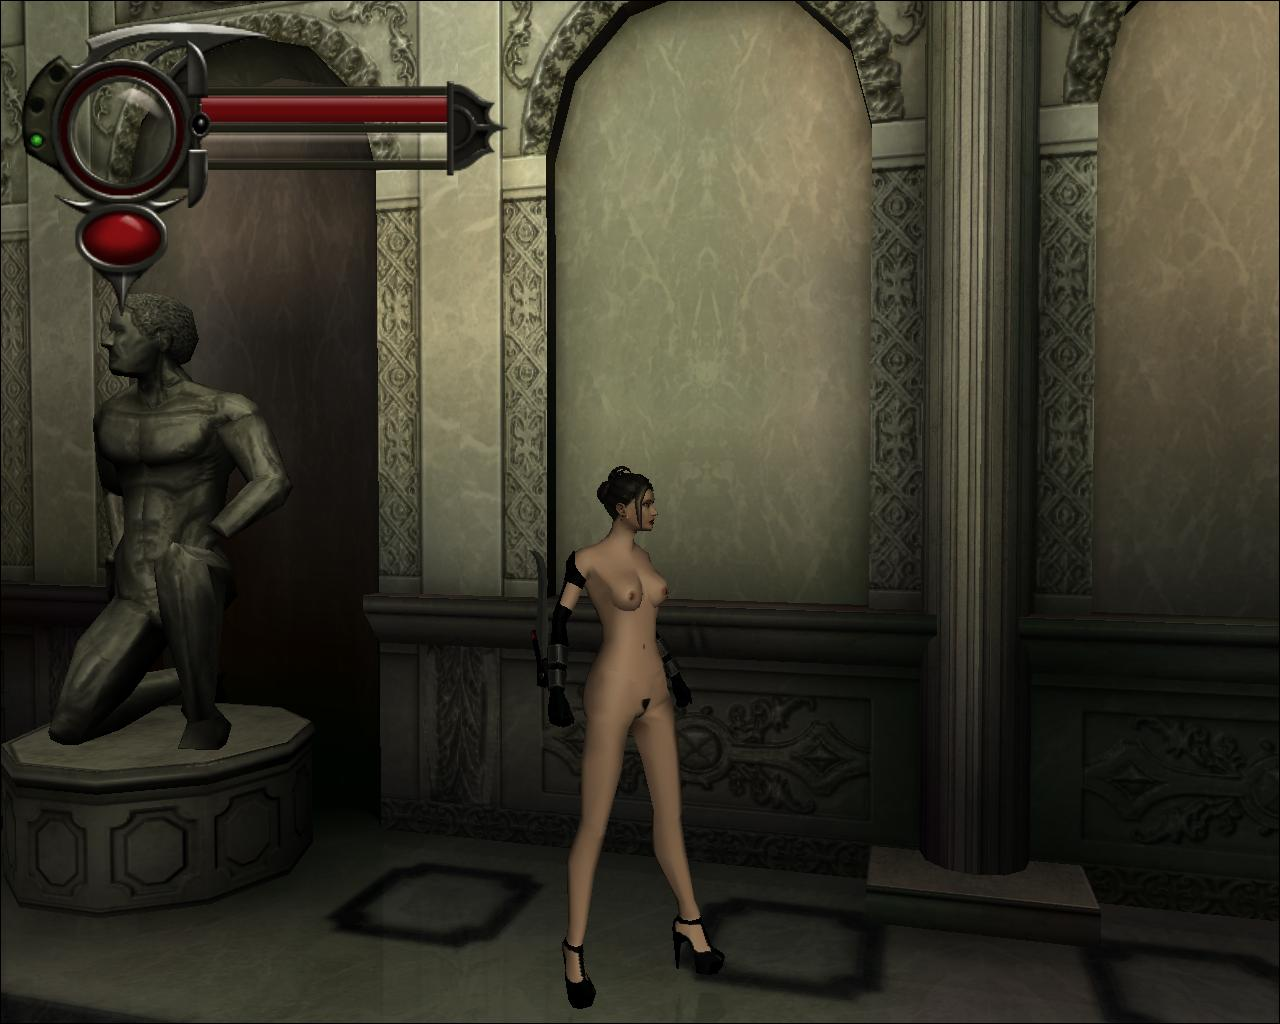 Nude mod for kotor 2 for pc sexy tube